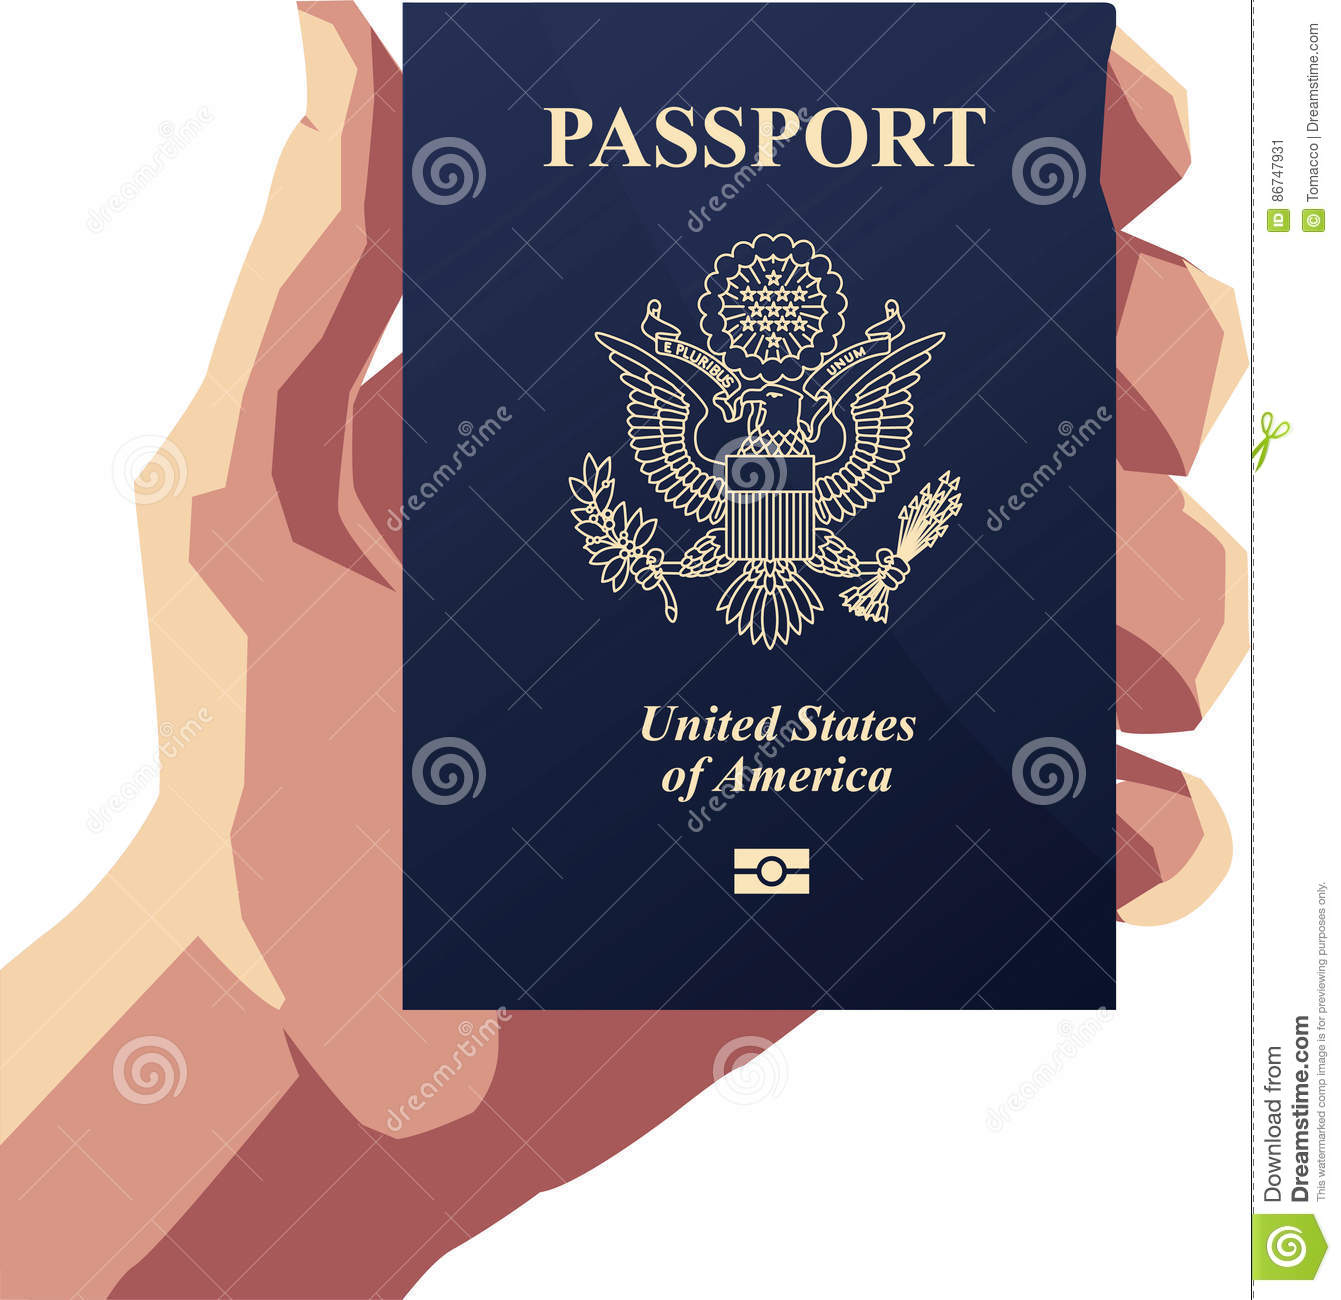 Hand Holding United States Of America Passport Stock